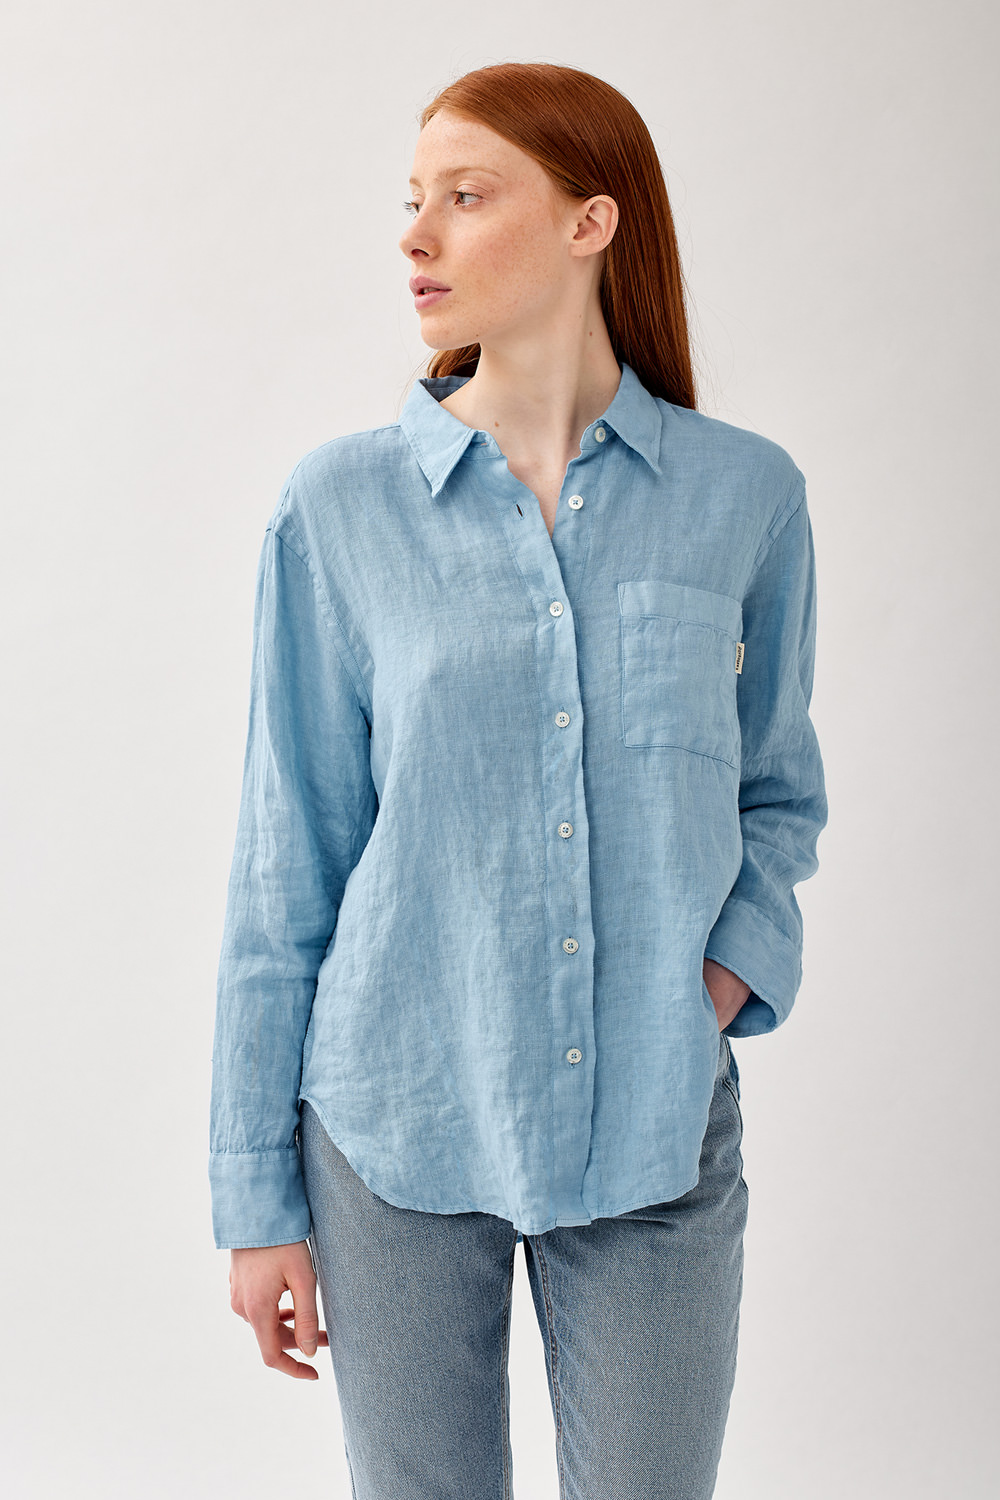 ROY ROGERS: CAMICIA EASY IN LINO DYED